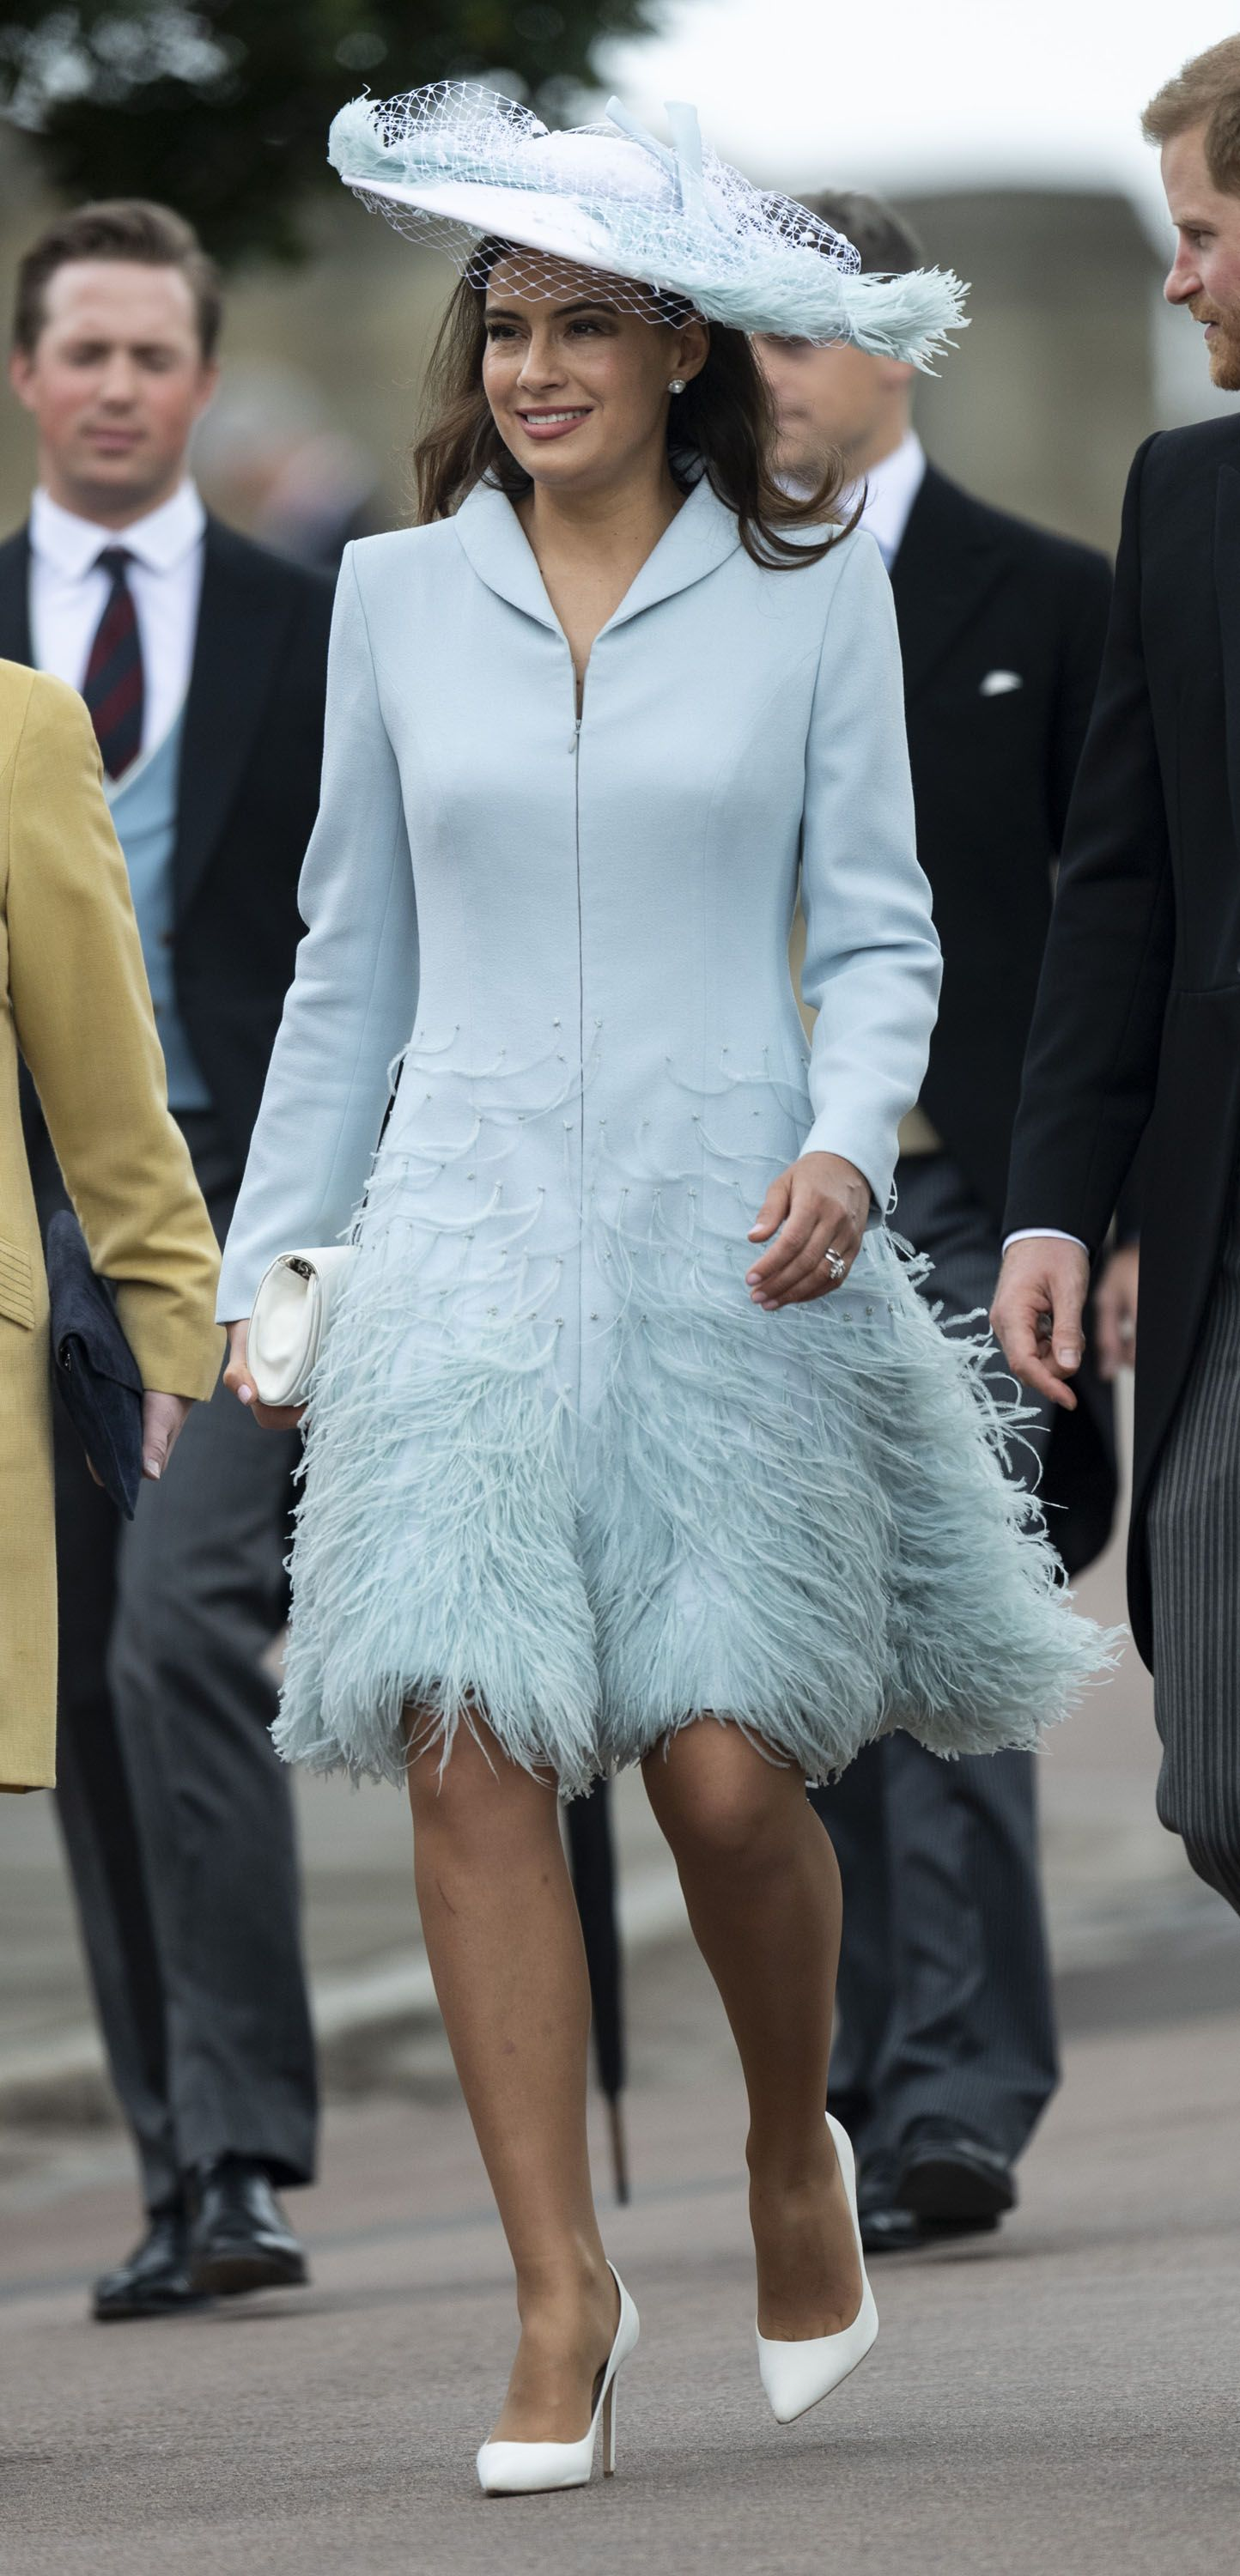 In a soft blue feathered ensemble and matching hat.